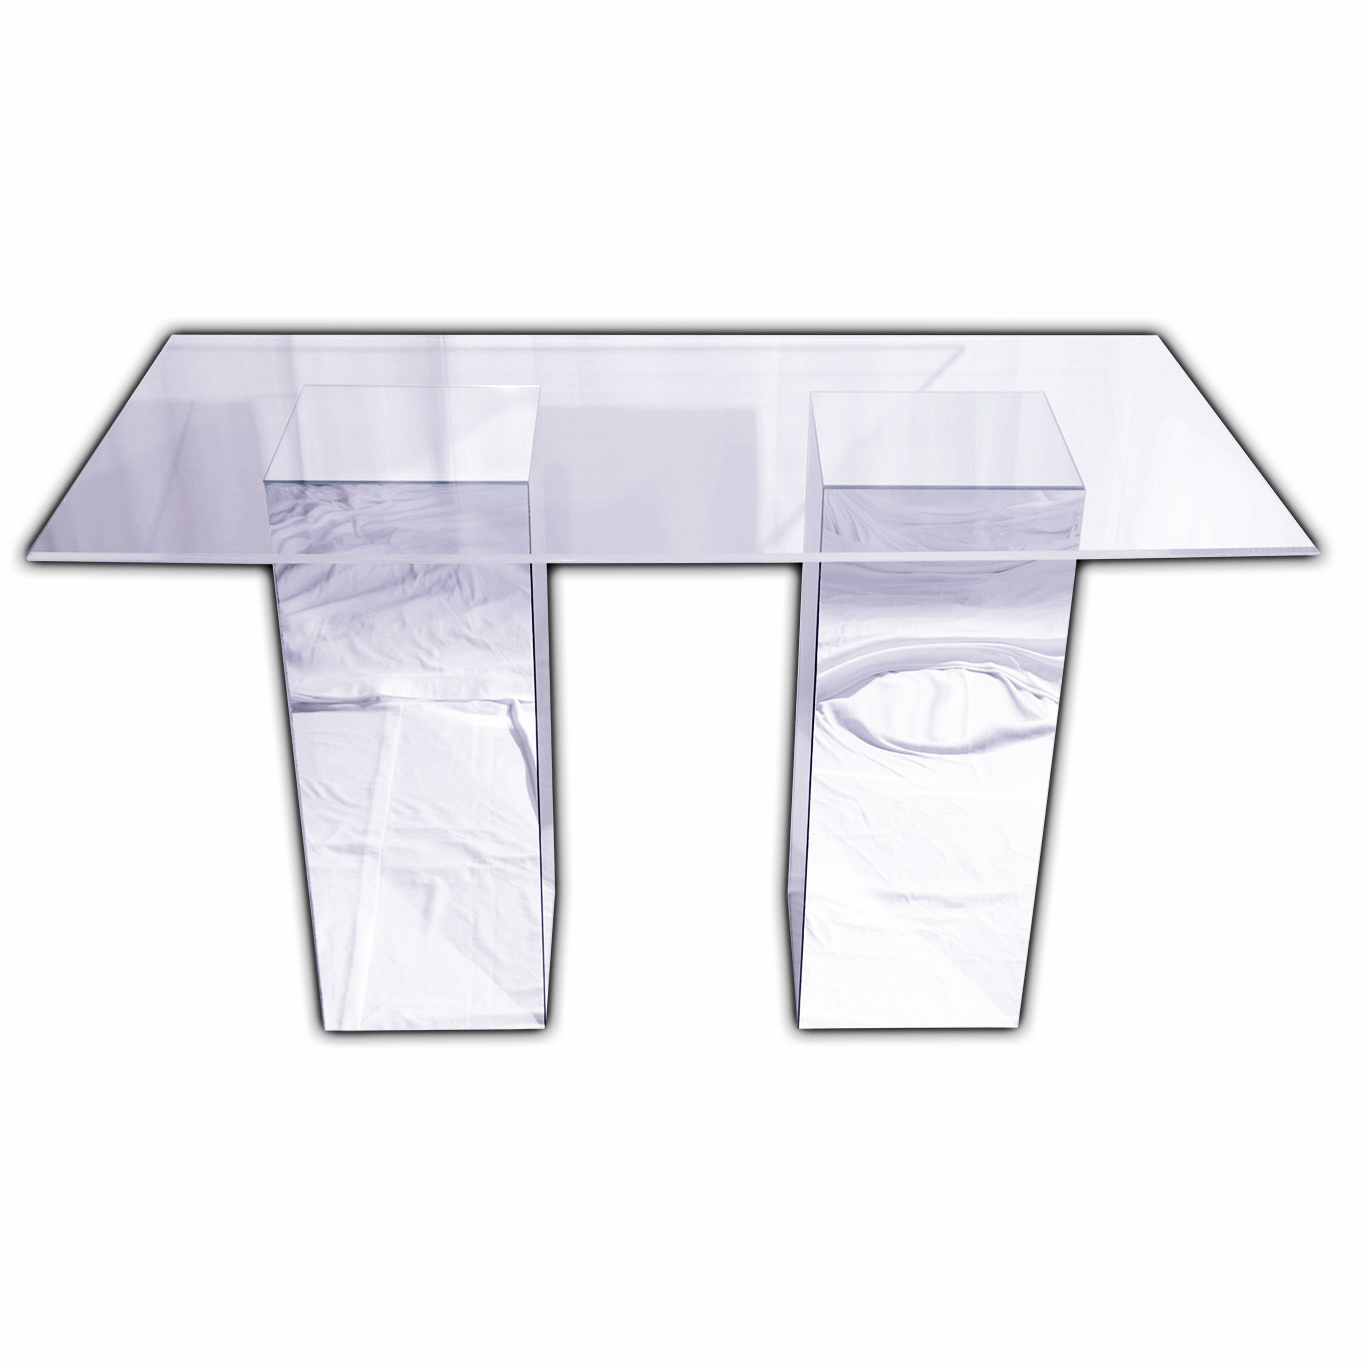 """Reflection Bar Table (Mirror Bases with Clear Acrylic Top). 3' x 6' Top. 16"""" x 16"""" x 42"""" Bases."""